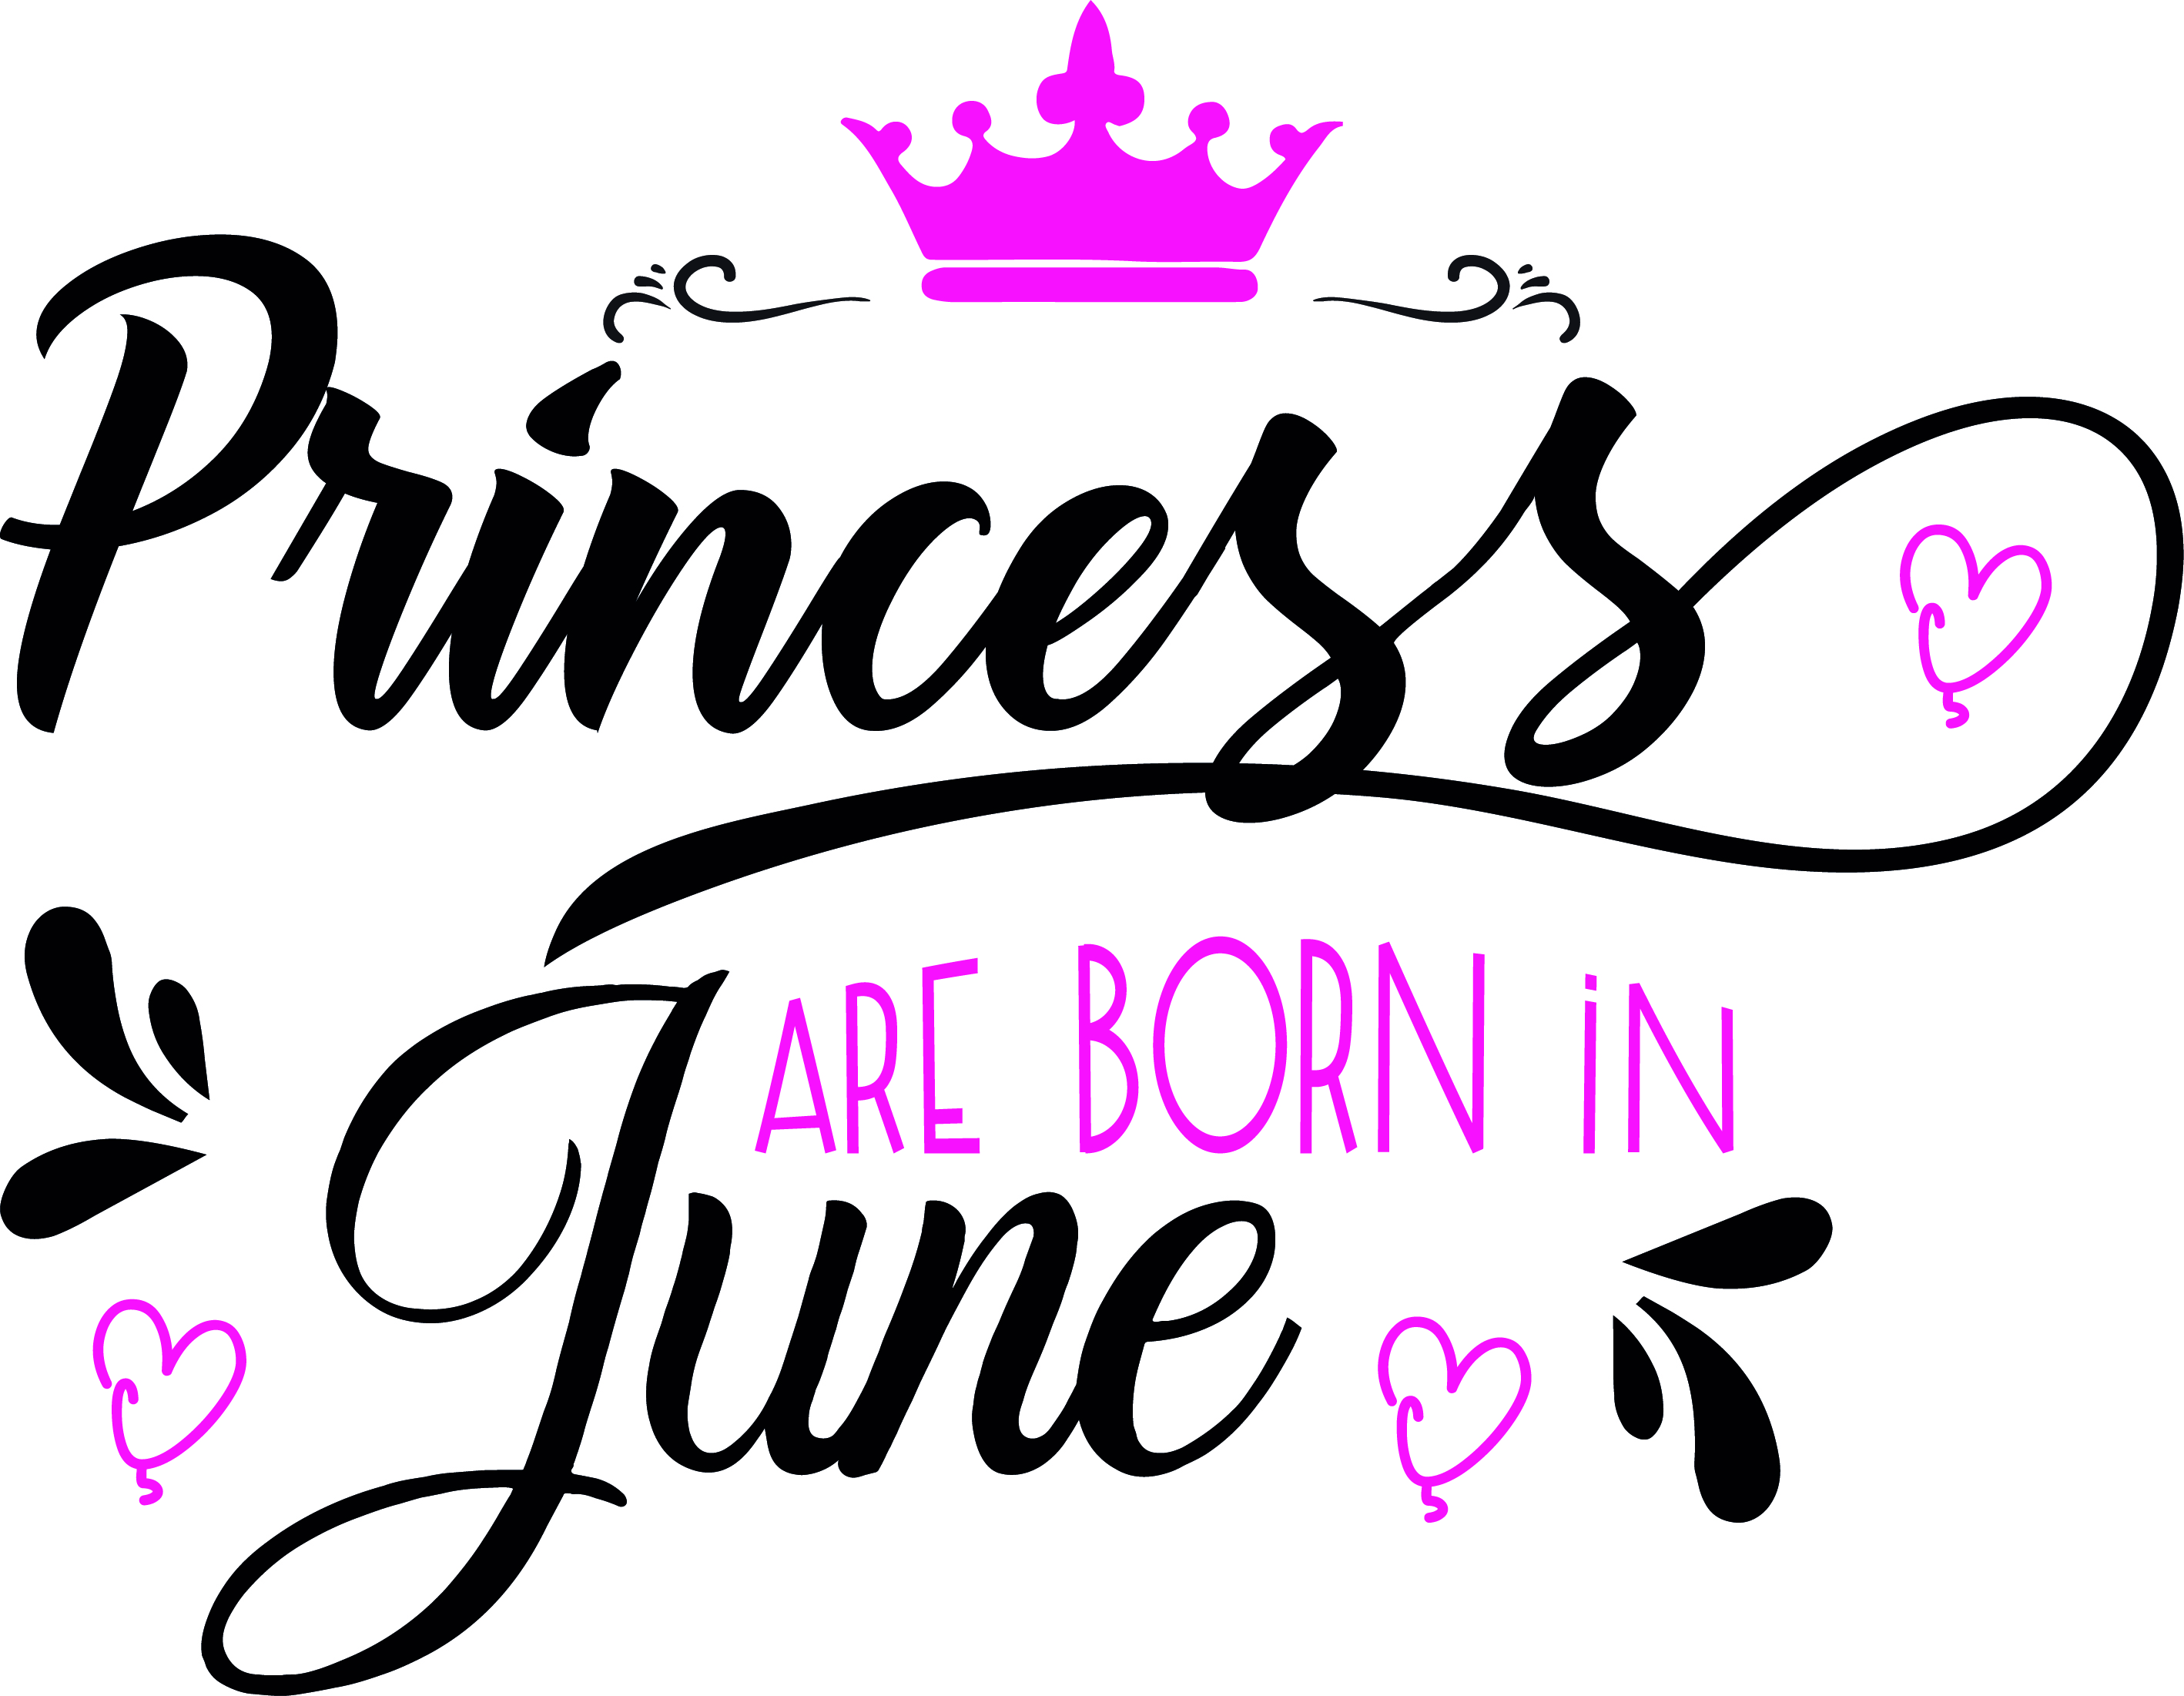 Princess are born in June Svg,Dxf,Png,Jpg,Eps vector file example image 2